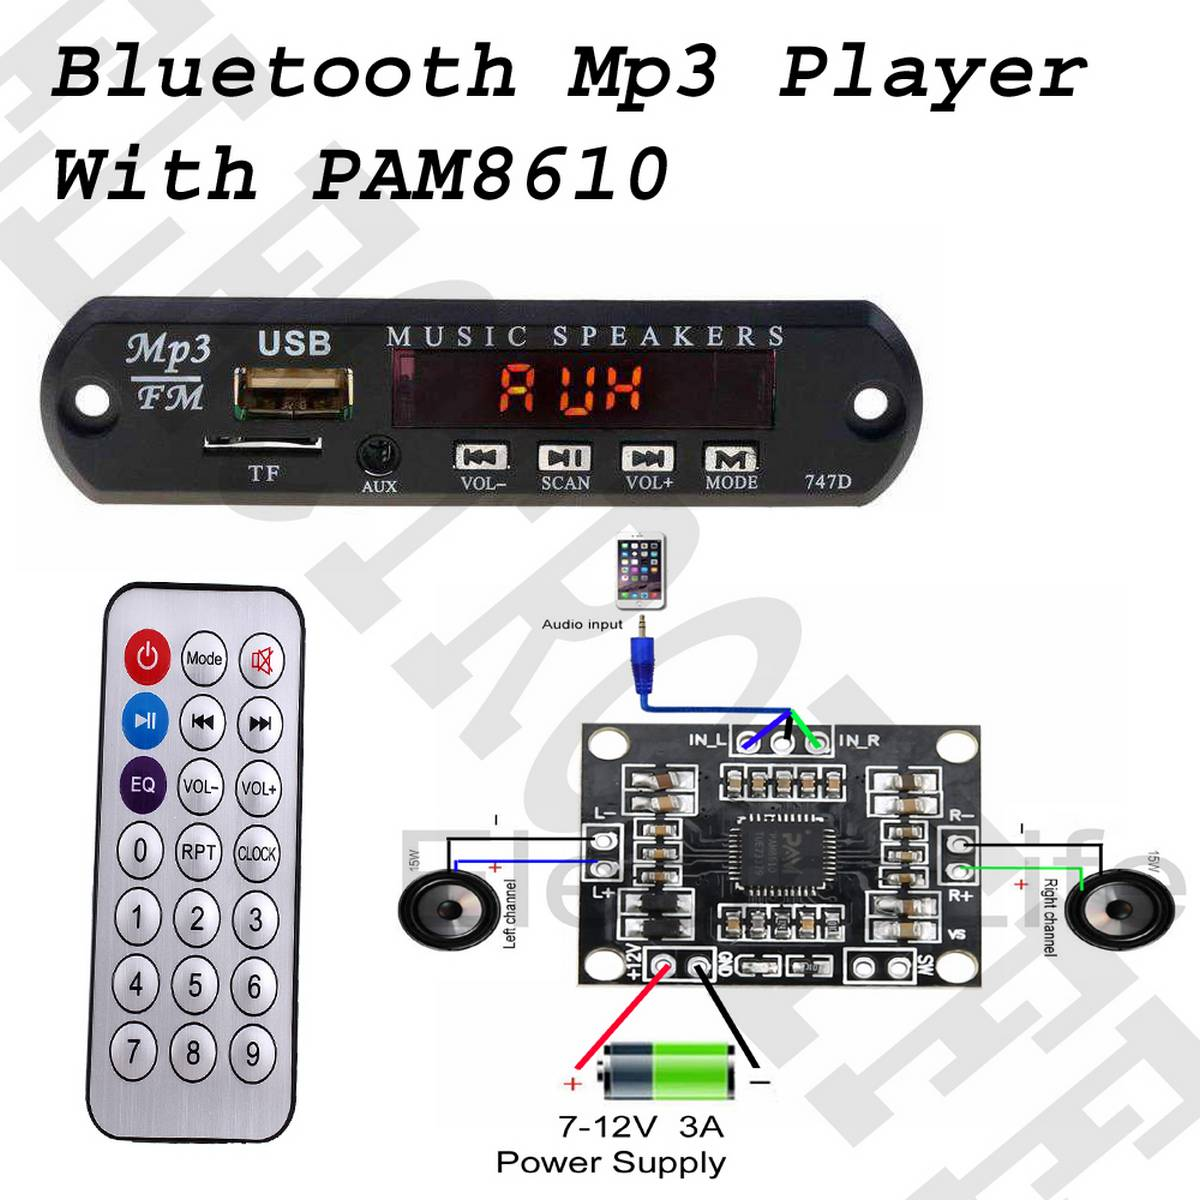 2 In 1 - Bluetooth MP3 Board with Remote Control Audio Module Support AUX TF USB FM Radio For Car Accessory - PAM8610 2x 15W Digital Stereo Amplifier Board